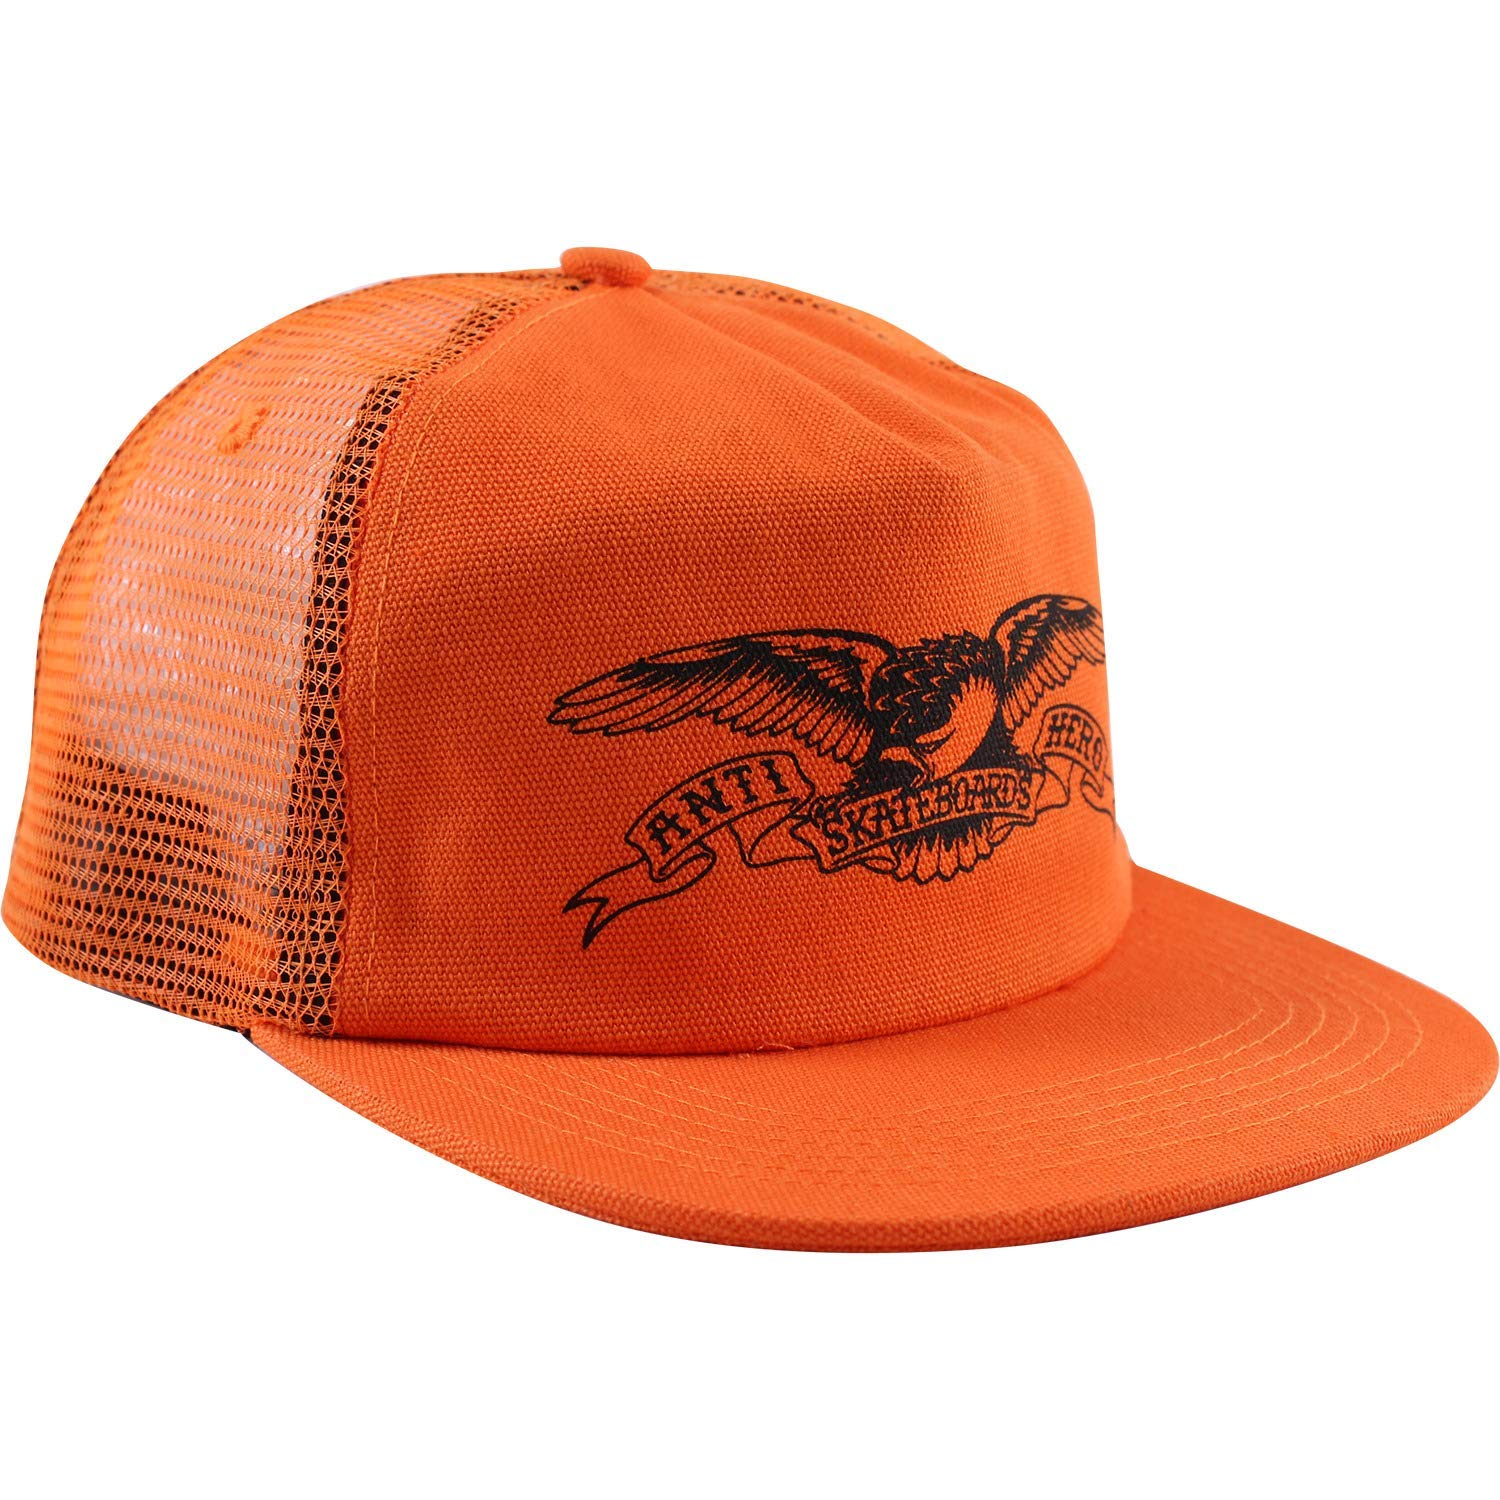 88b53281b95 Get Quotations · Anti Hero Skateboards Basic Eagle Orange Black Mesh  Trucker Hat - Adjustable